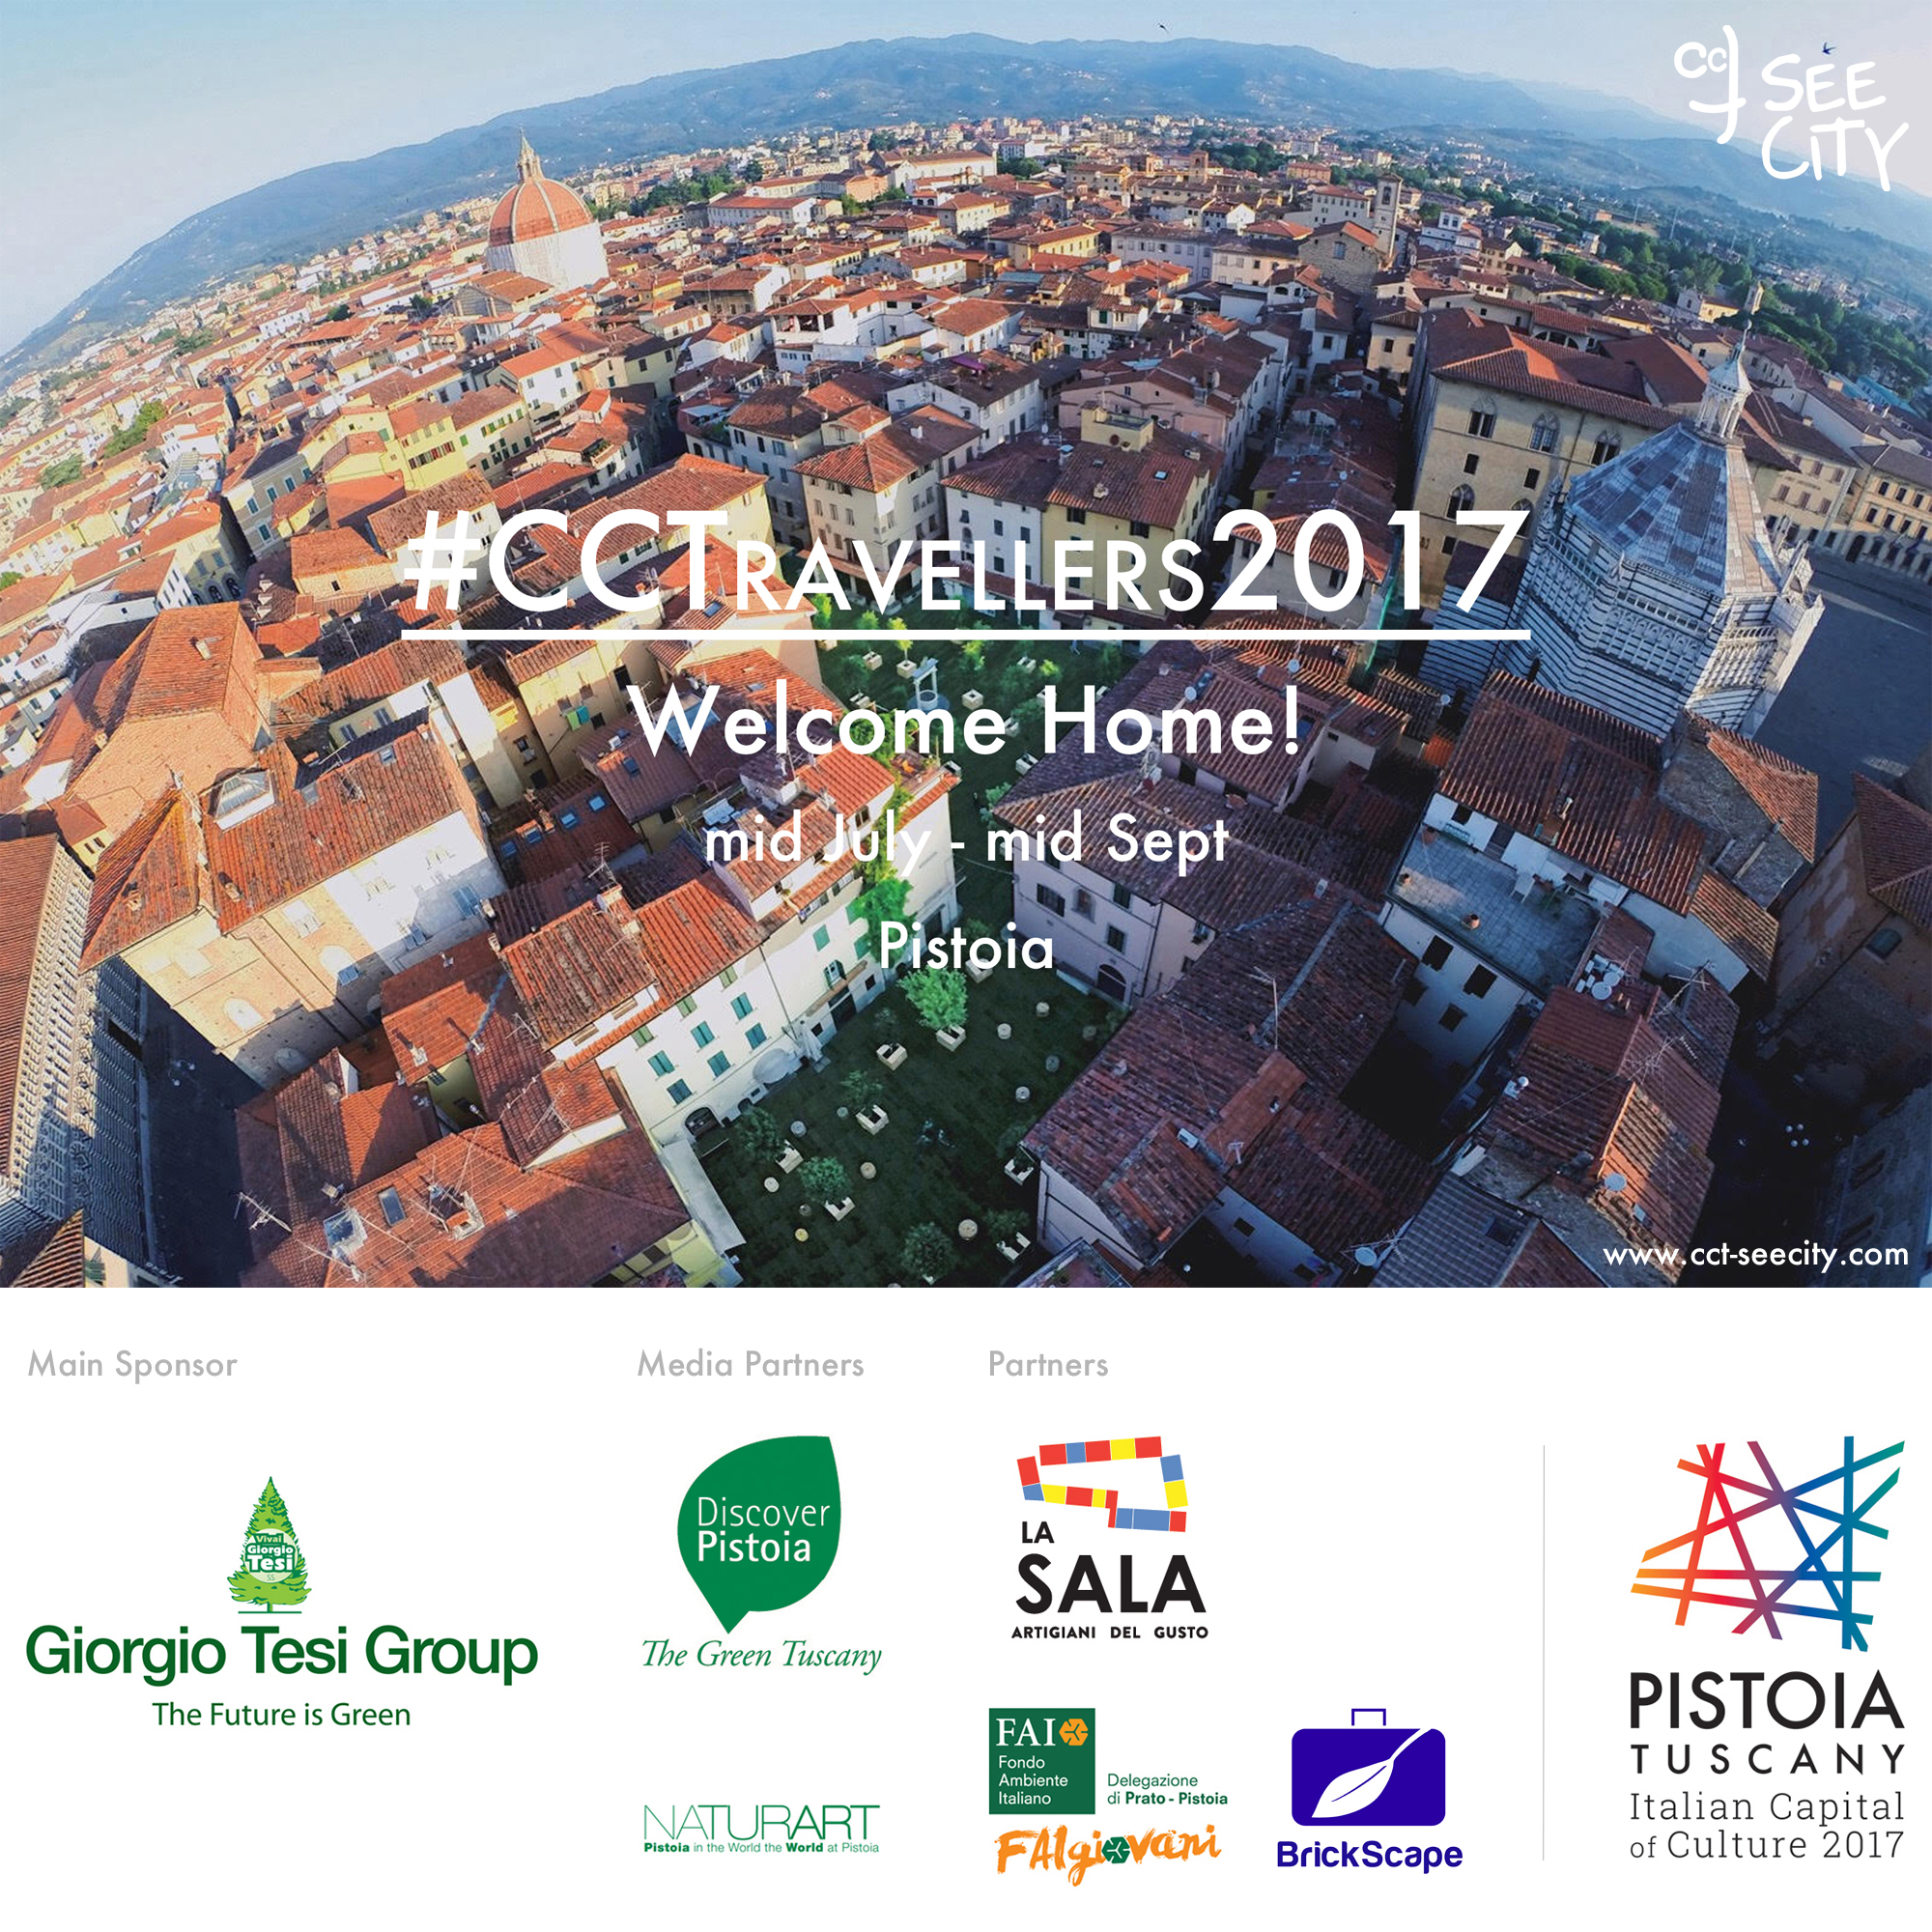 #CCTravellers2017 - Welcome Home - Pistoia